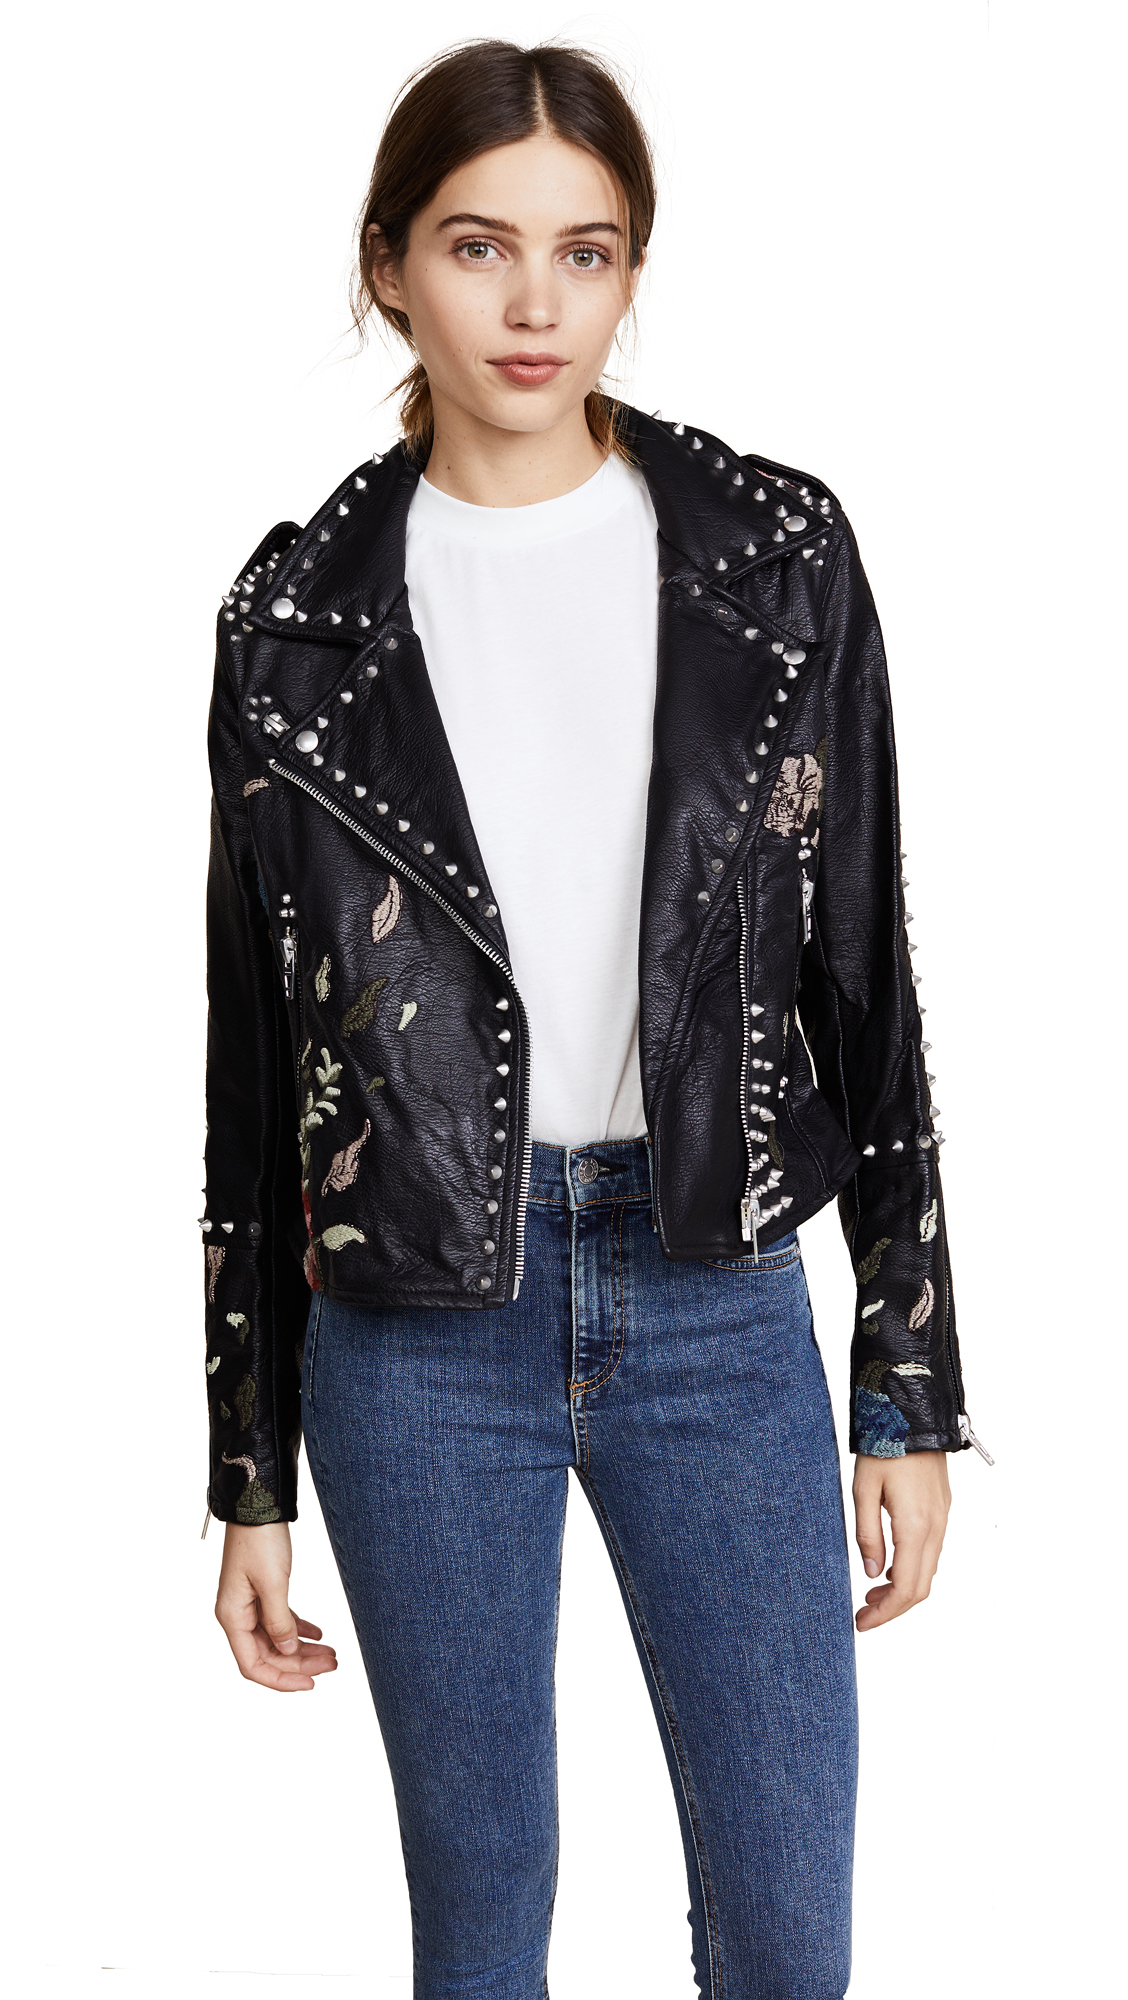 Blank Denim Budding Romance Moto Jacket - Black